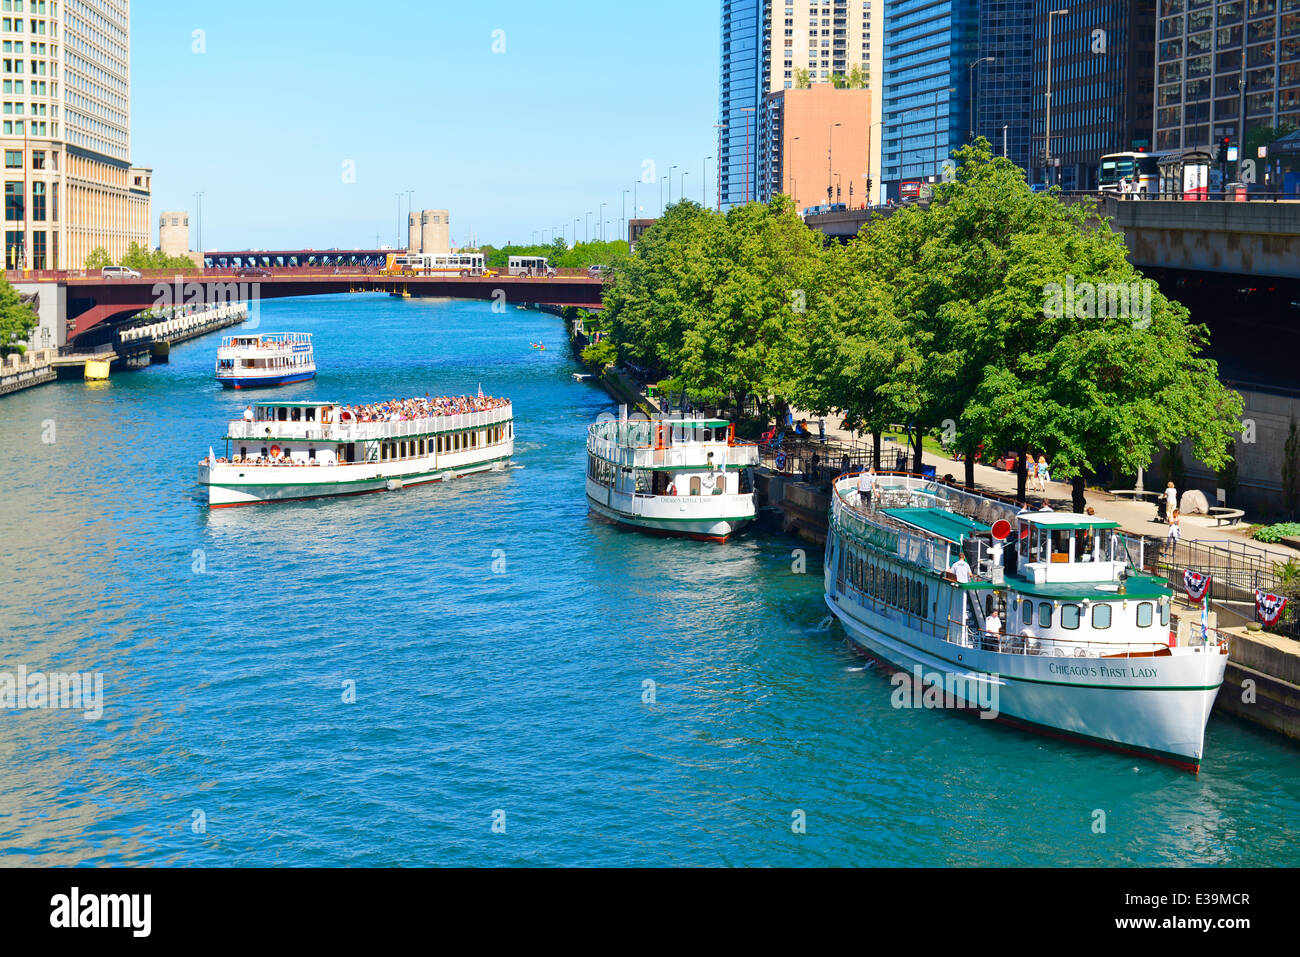 Chicago River Cruise, Tourist Boat,Boats along the renowned Chicago Riverwalk, Illinois, USA; - Stock Image